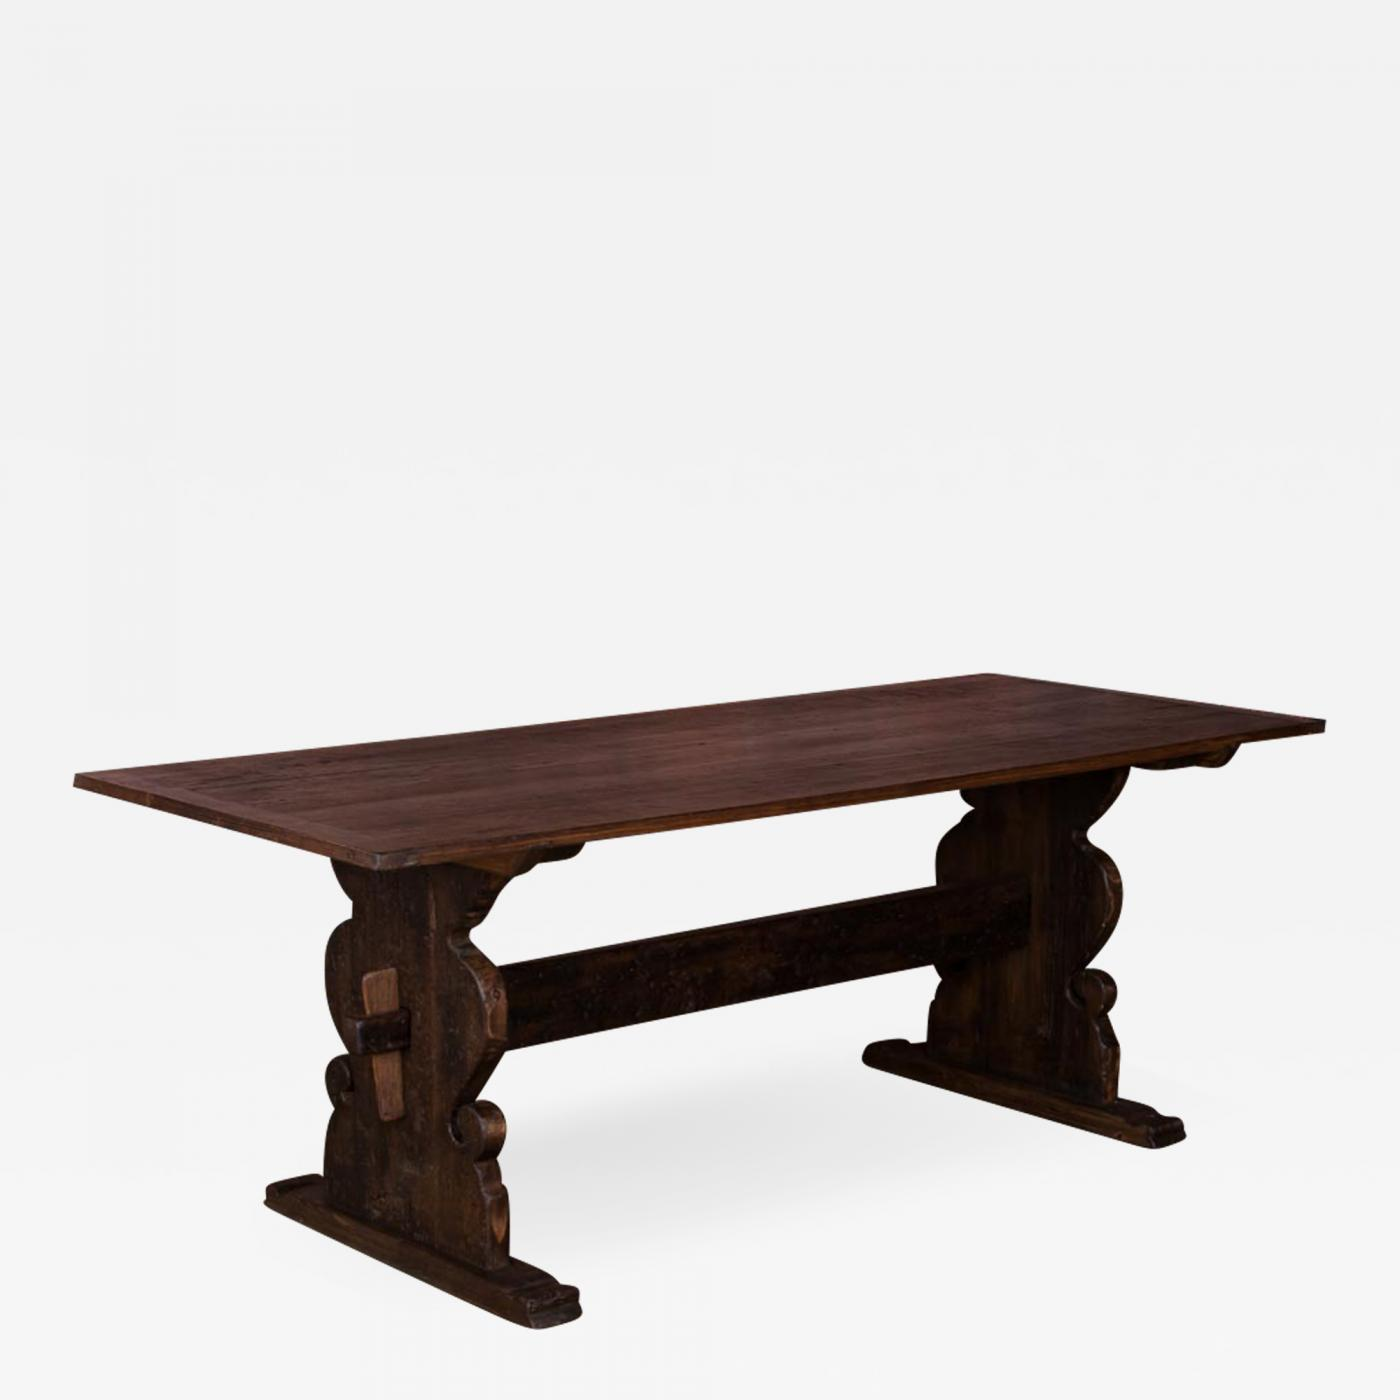 Listings / Furniture / Tables / Dining Tables & Antique Swedish Country Pine Trestle Dining Table